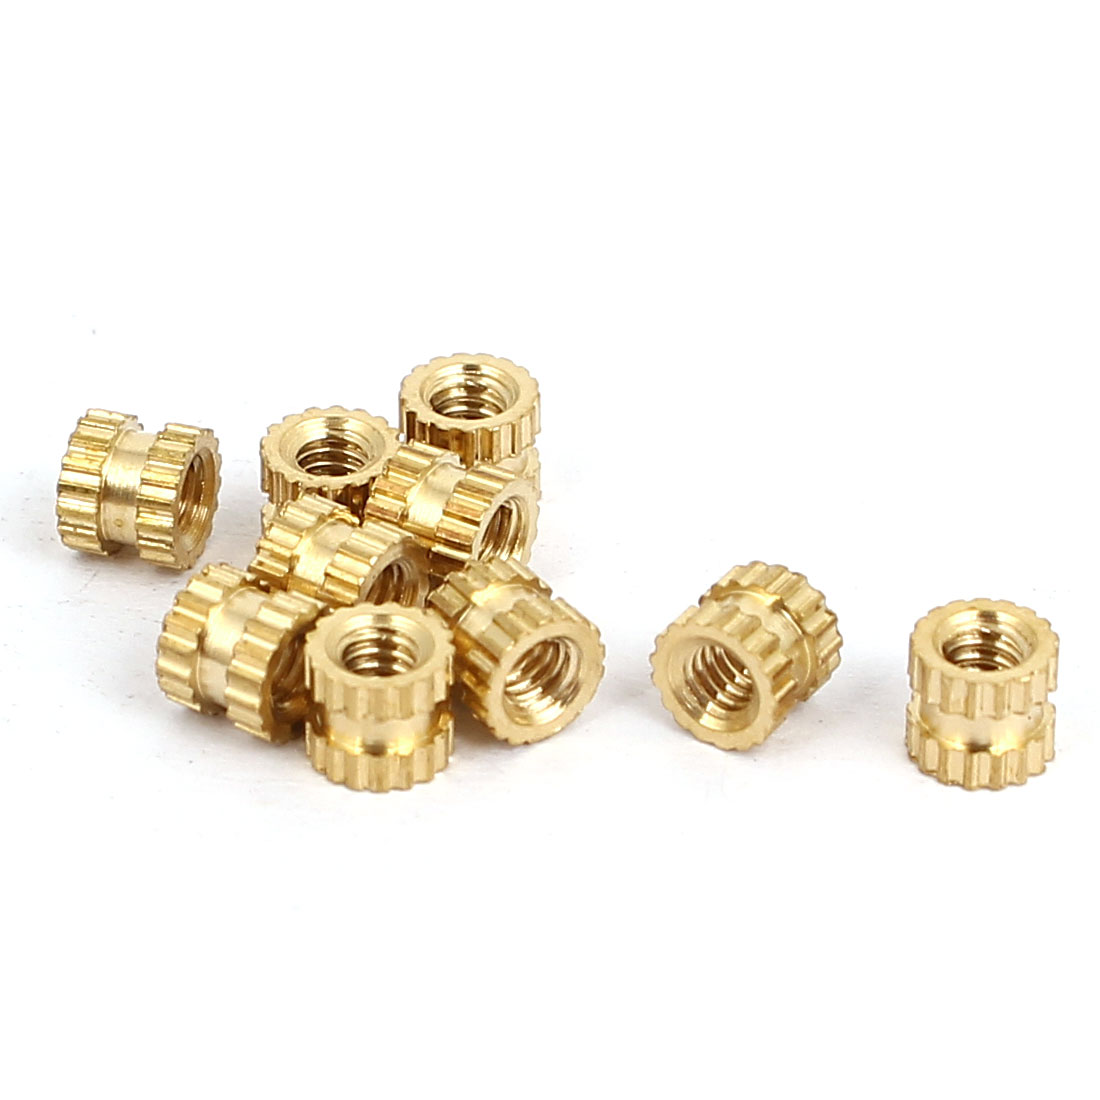 M2x3mmx3.5mm Female Threaded Brass Knurled Insert Embedded Nuts Gold Tone 10pcs